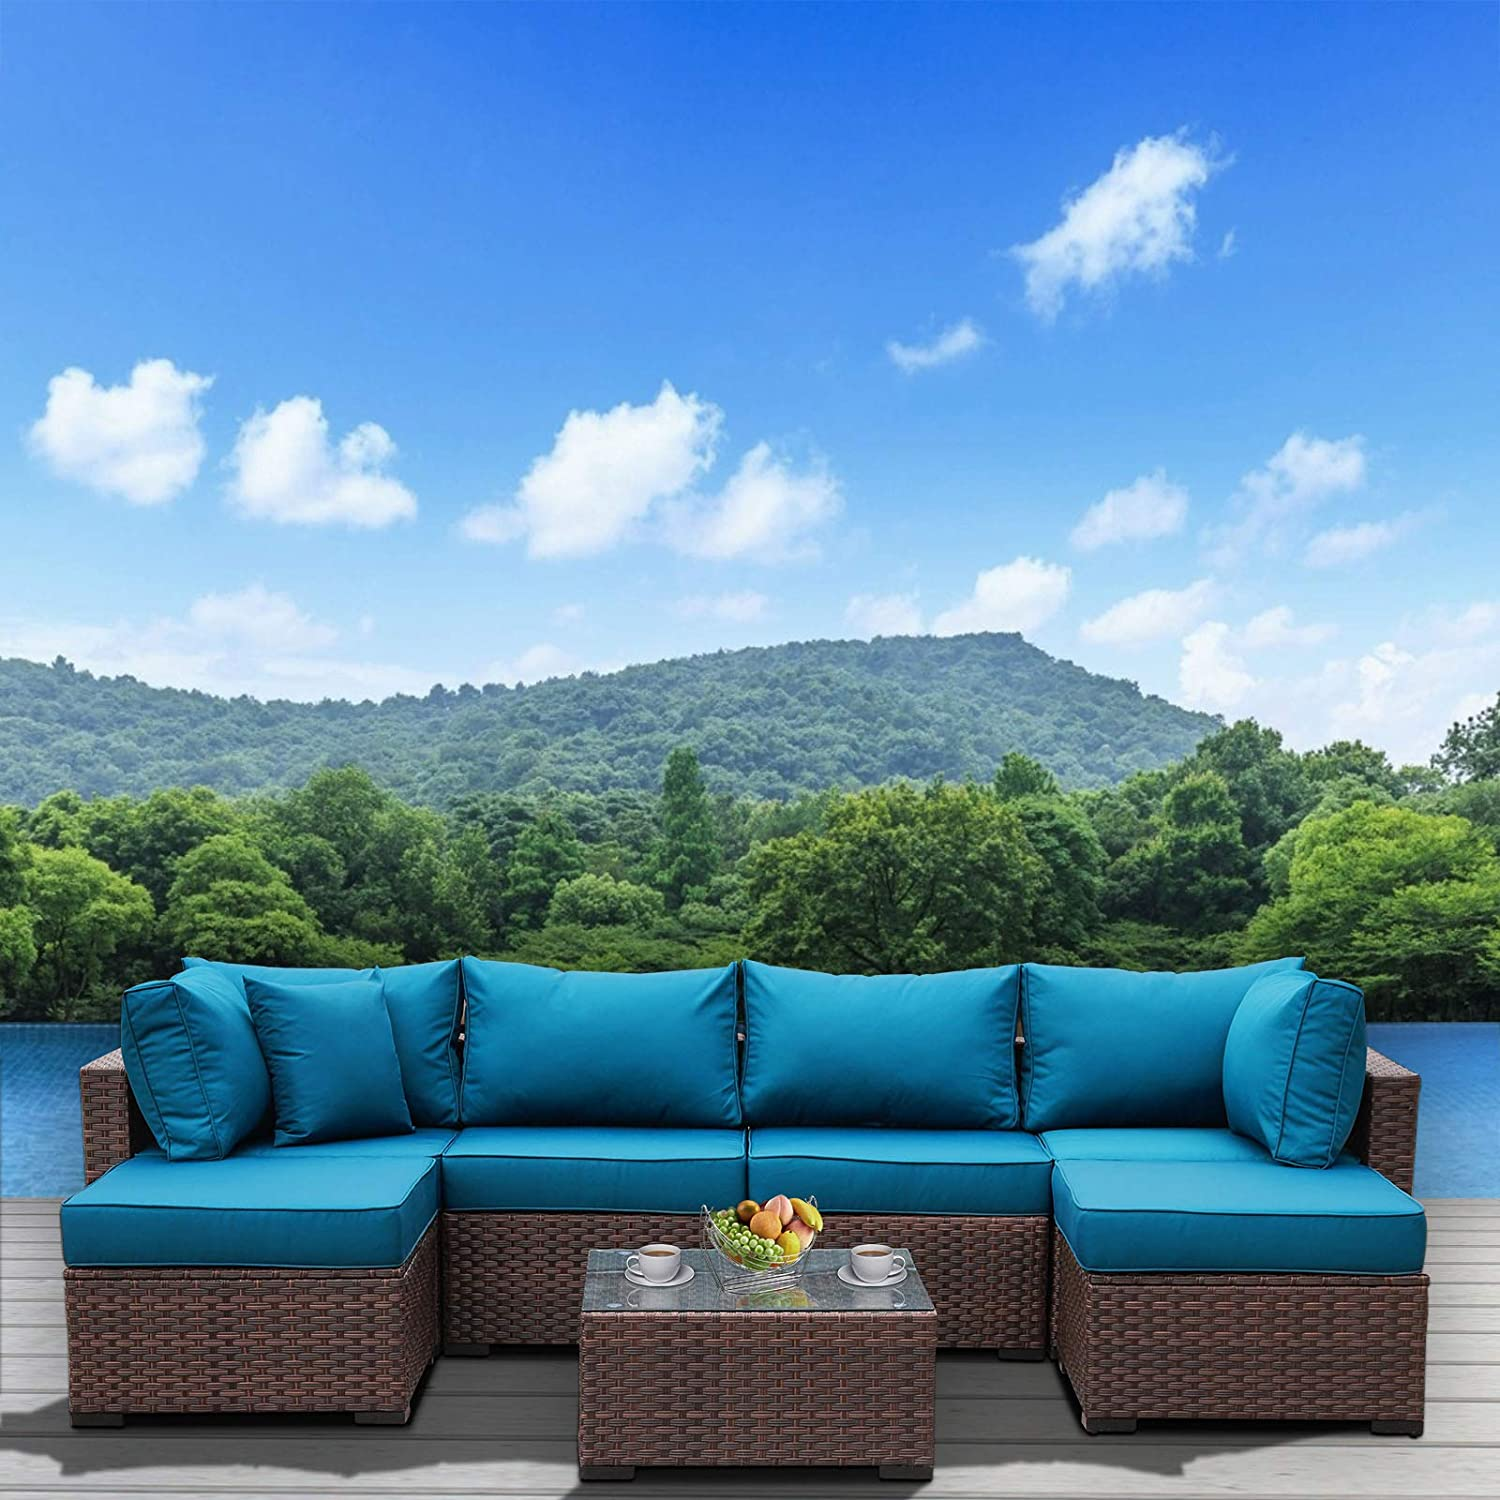 Outdoor Patio Brown Rattan 7 Piece Sectional Furniture Set PE Wicker Conversation Sofa with Peacock Blue Cushion